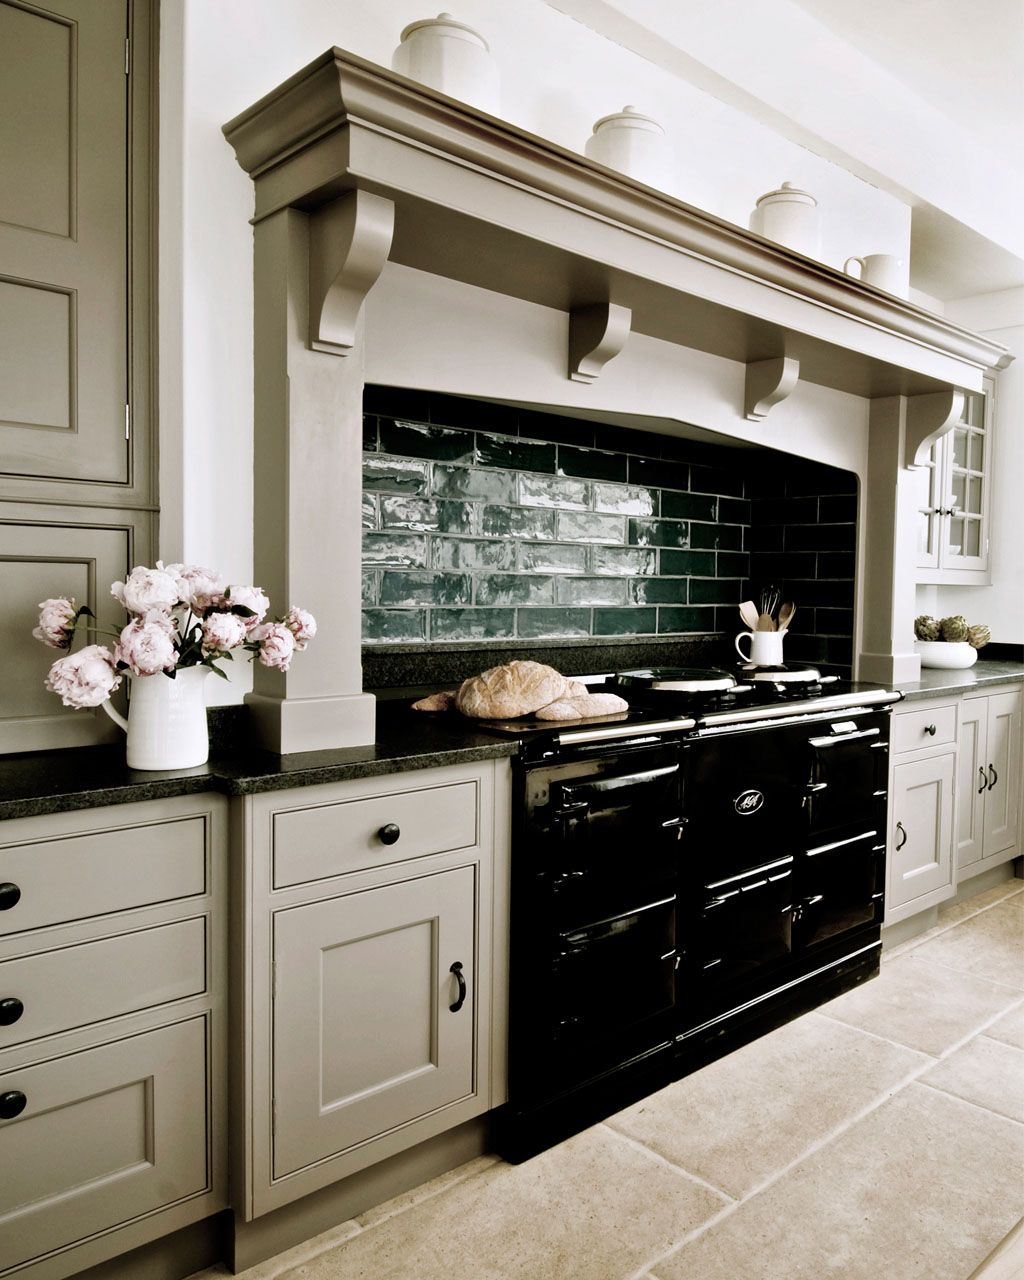 Admirals Kitchen Living Room Remodel: Beautifully Designed Bespoke Kitchens, Boot Room Design